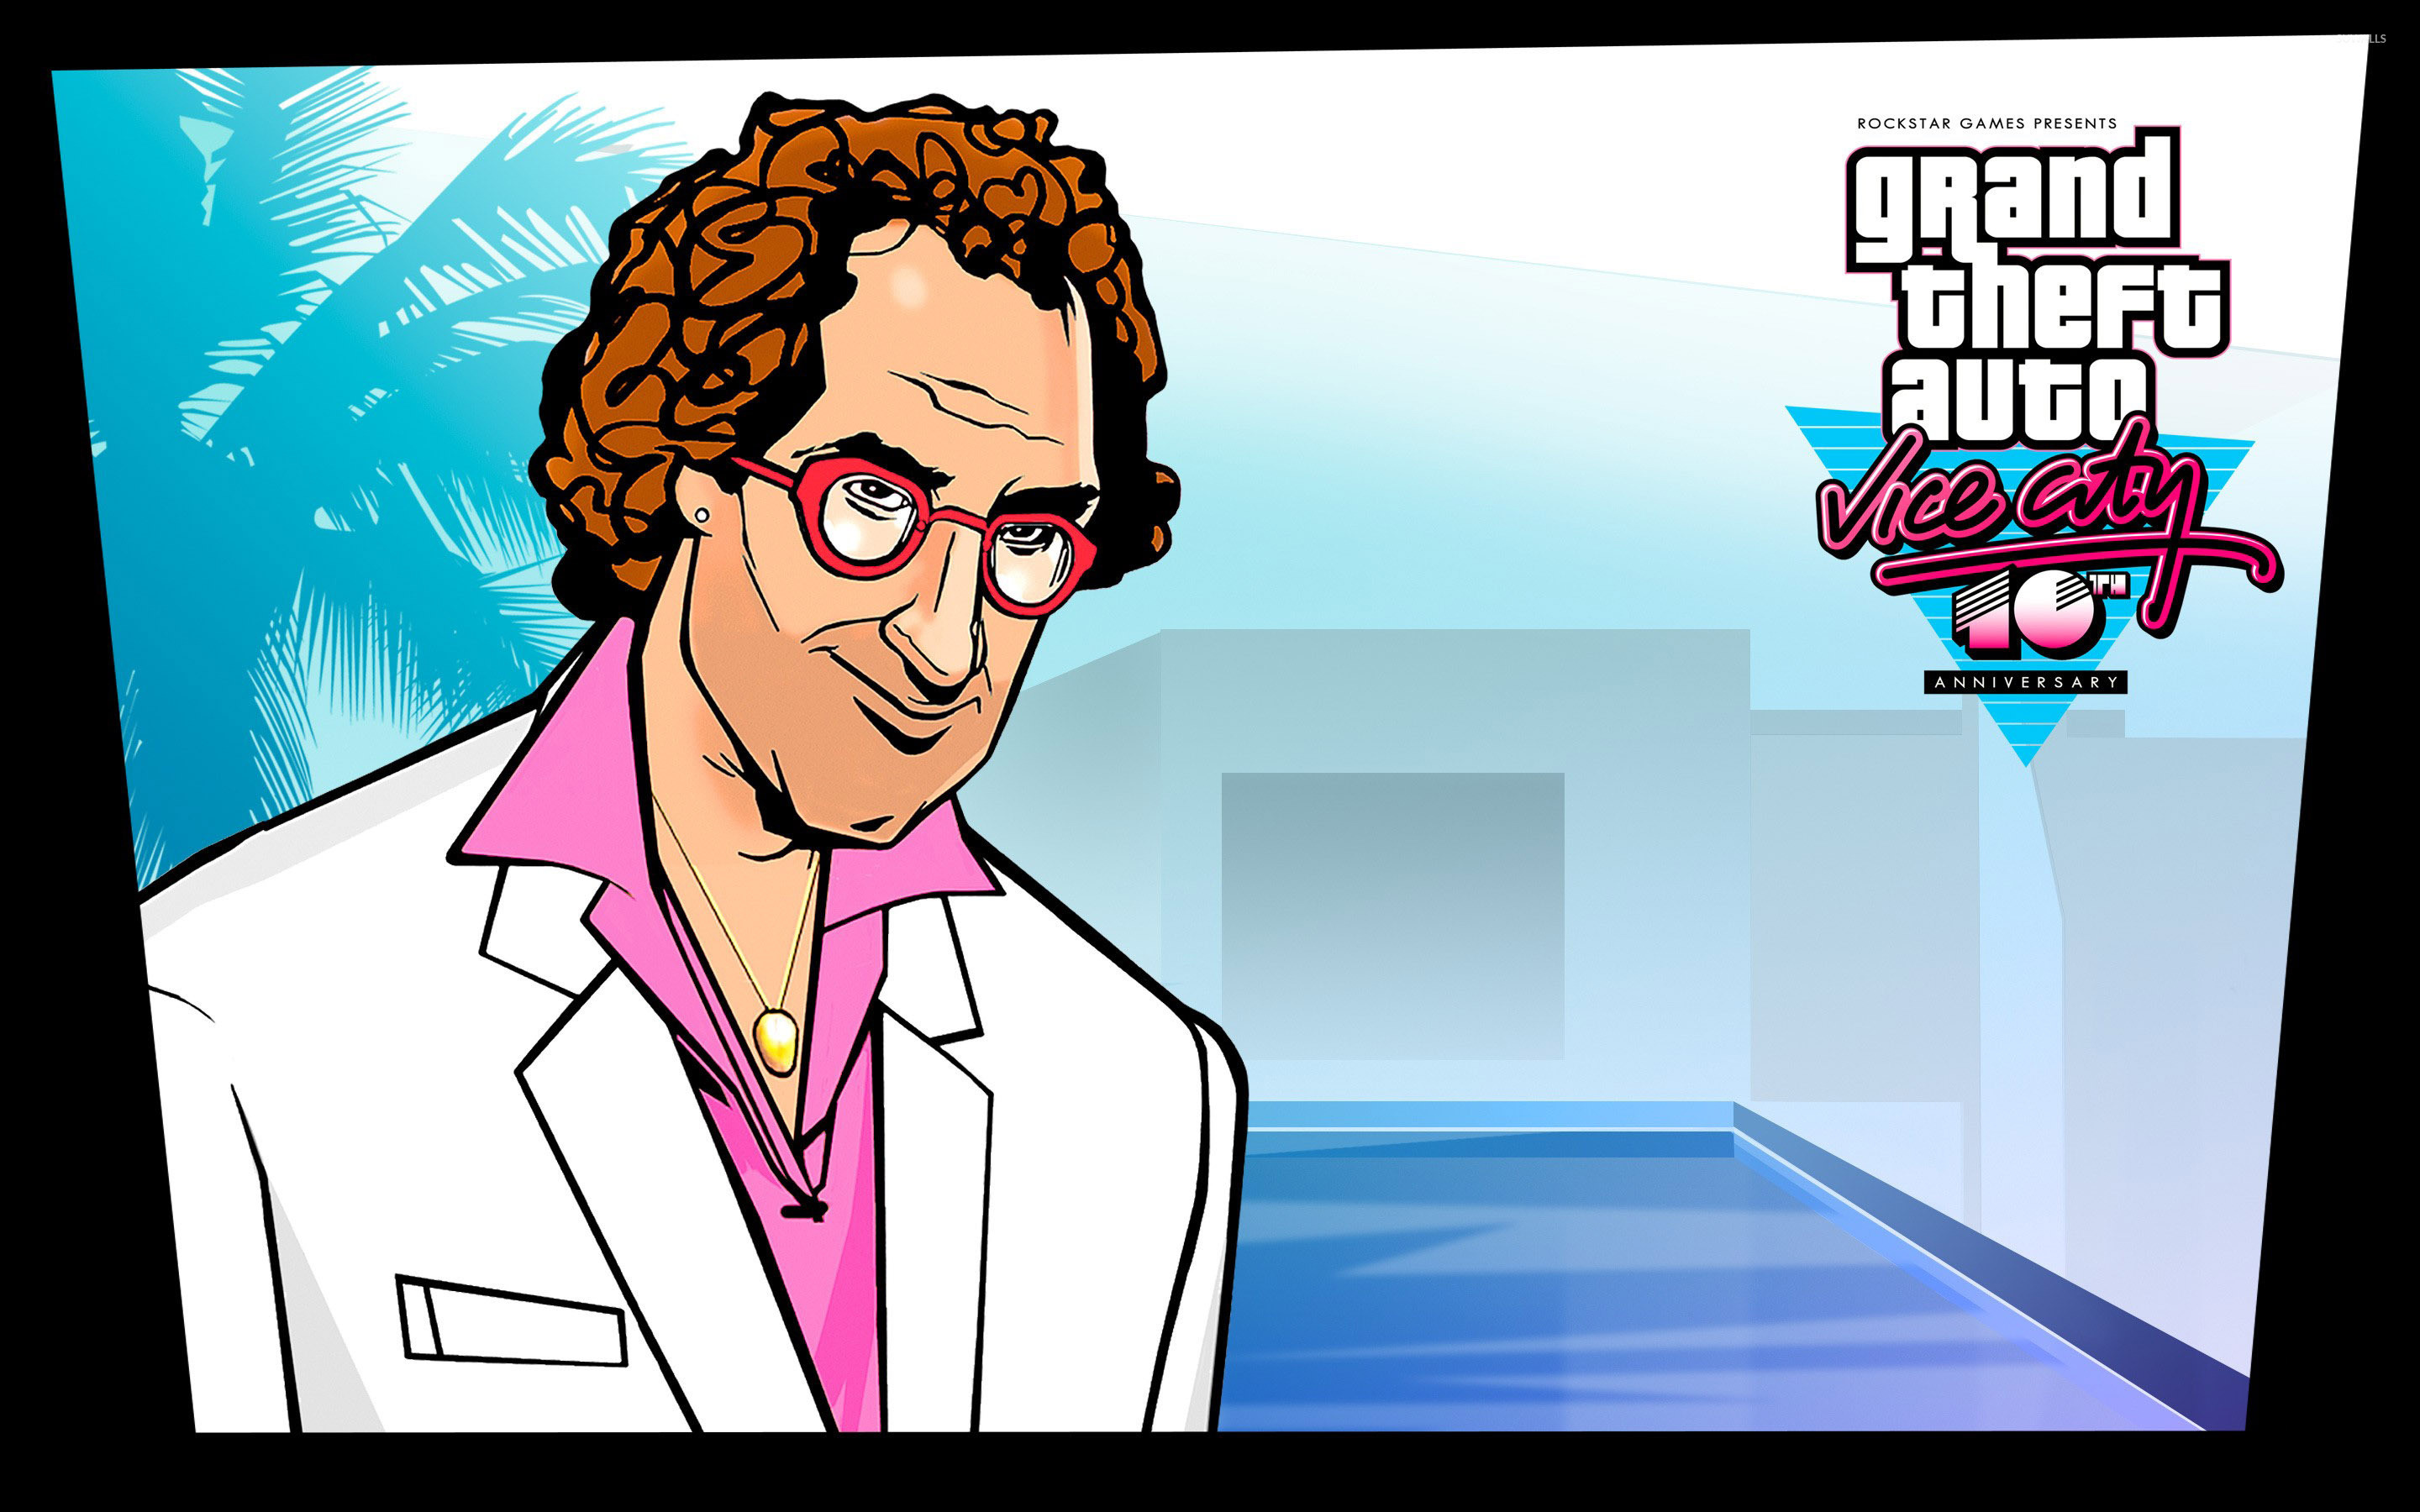 2880x1800 Ken Rosenberg at Vice City 10th Anniversary wallpaper